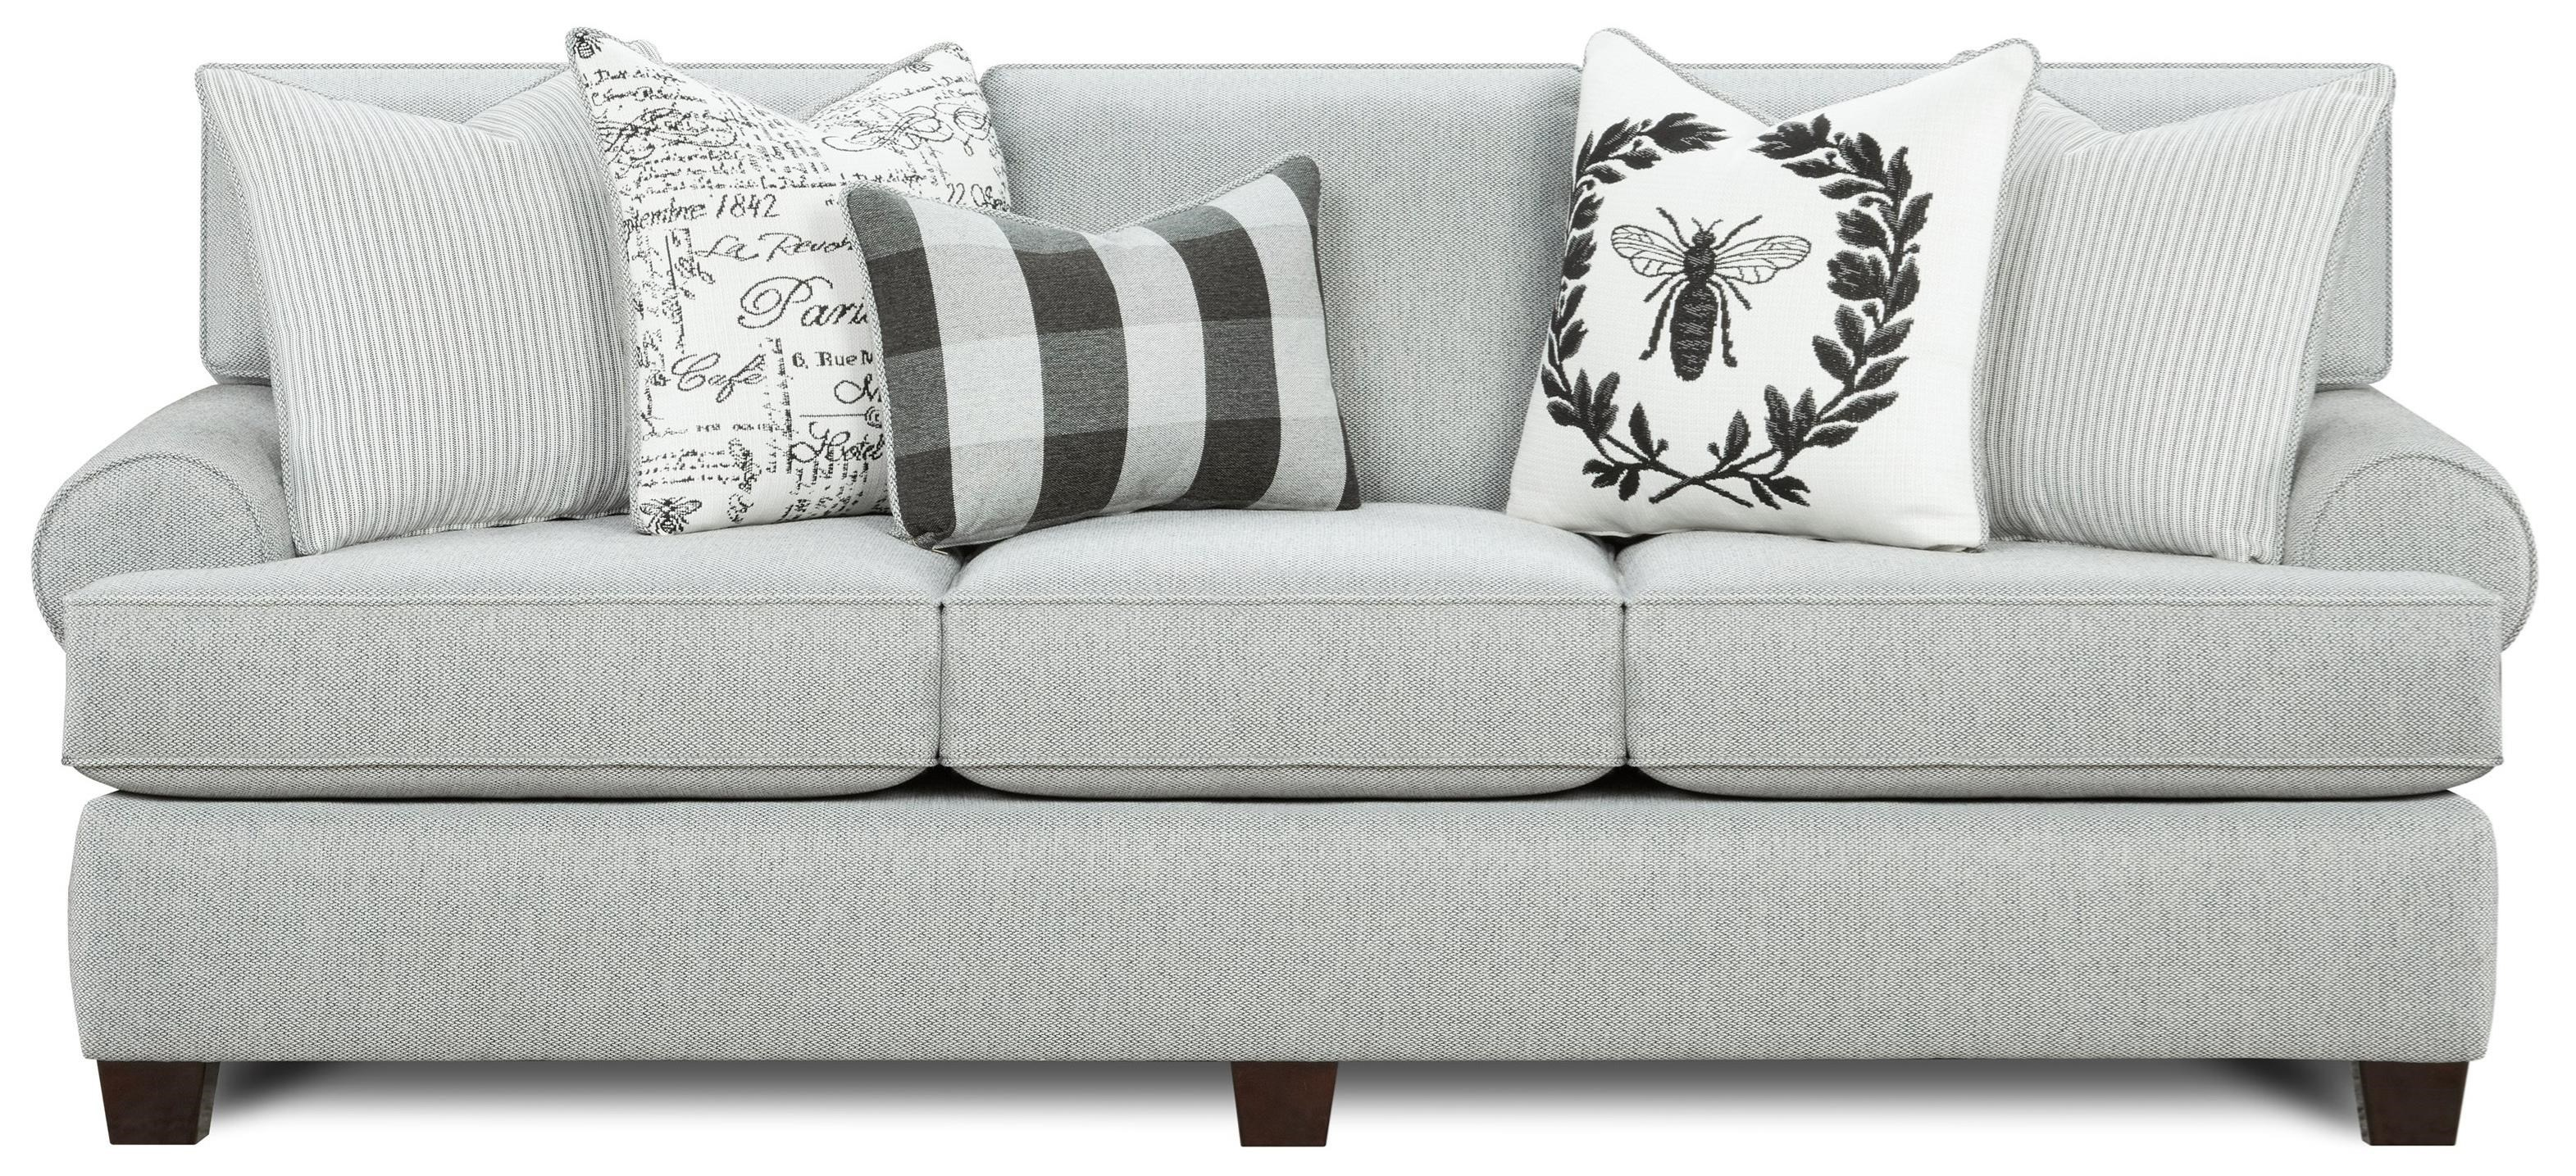 39-00 Sleeper Sofa by FN at Lindy's Furniture Company